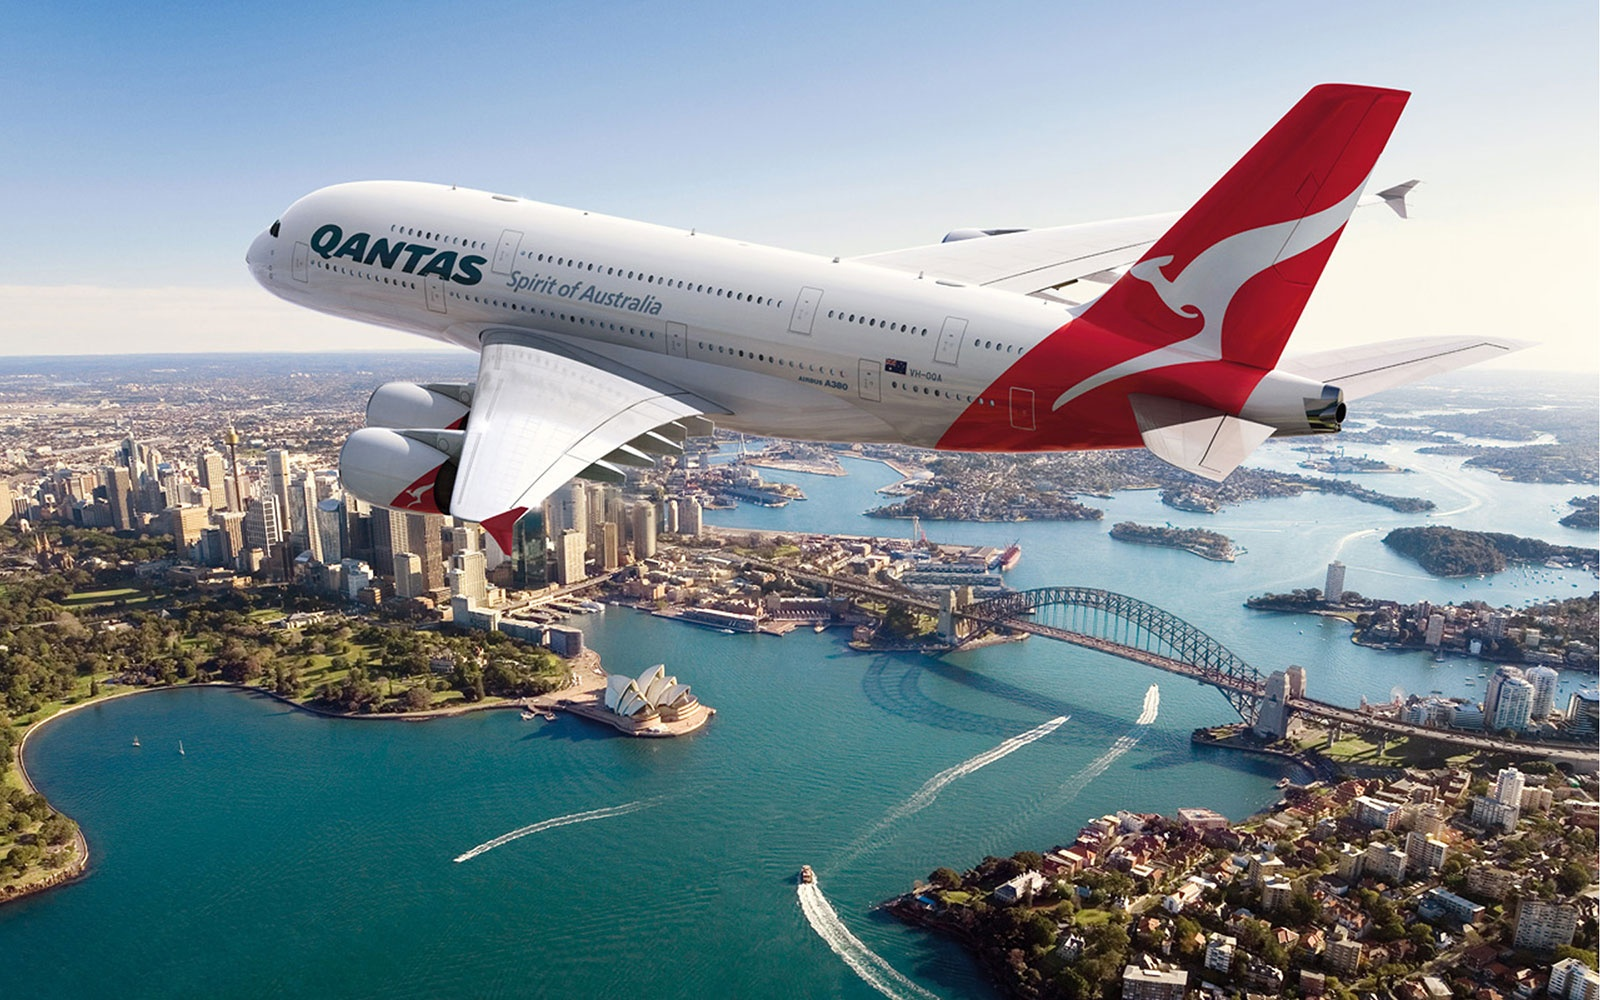 No. 10 International: Qantas Airways